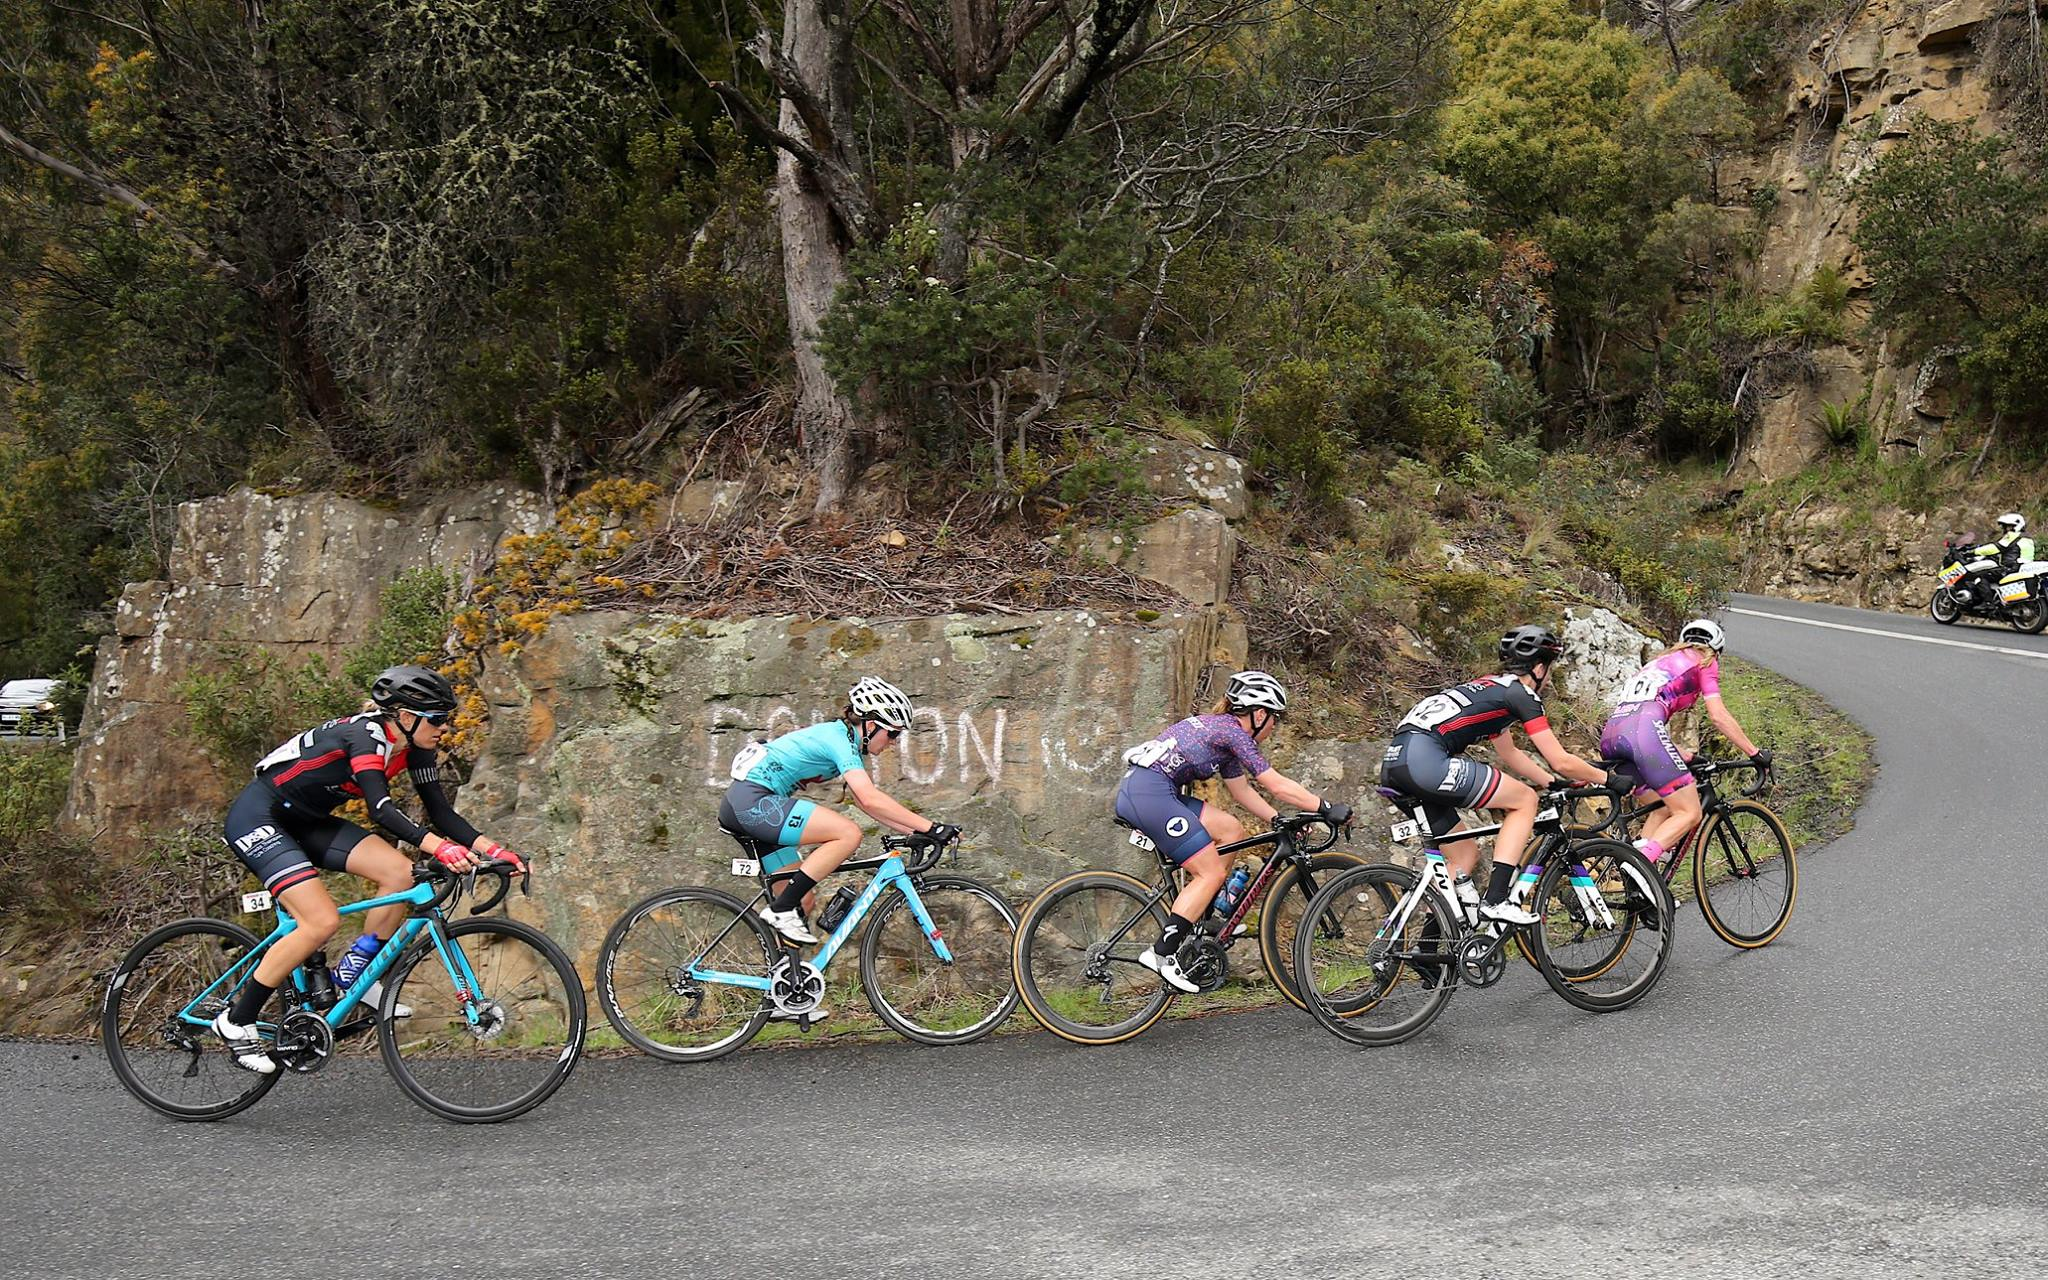 Kmac in the final group of five going up Poatina. Photo credit: Con Chronis Photography.